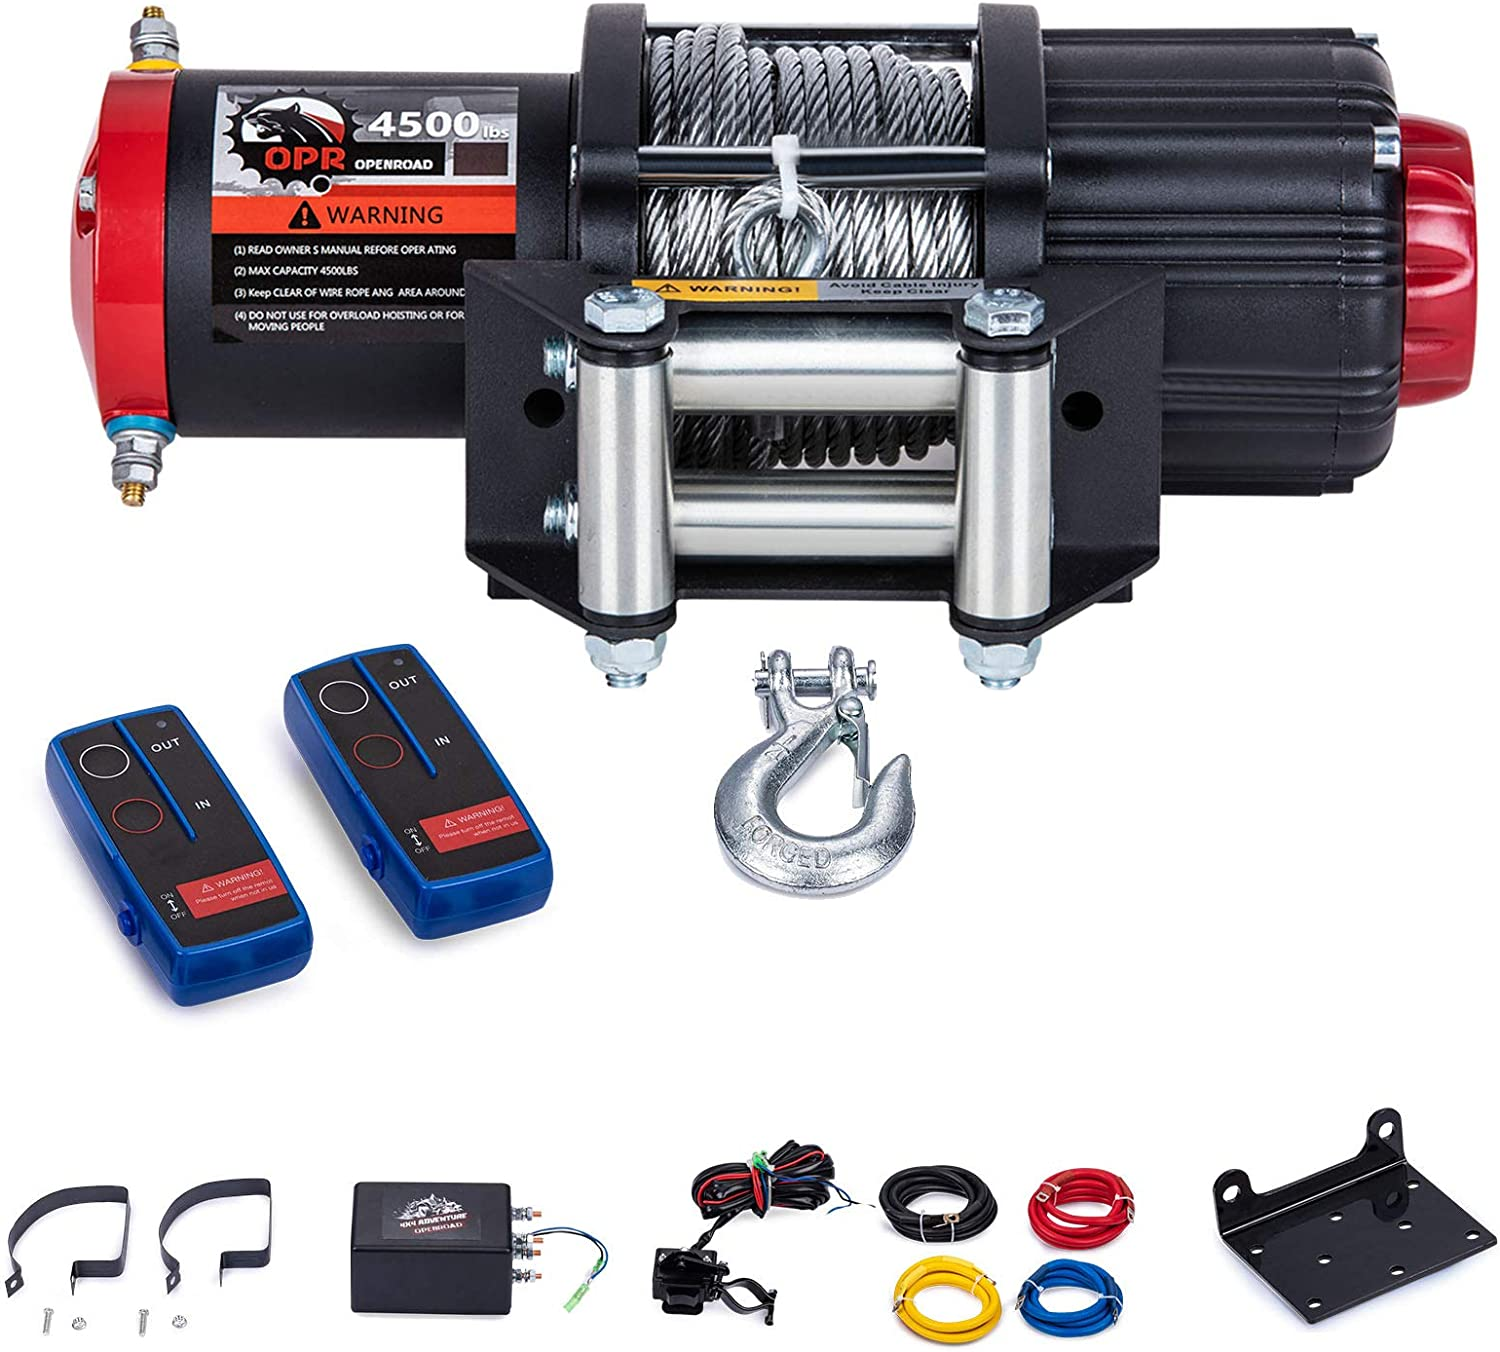 Come with Wireless Handheld Remote Control OPENROAD 3500lb ATV//UTV Winch with 12m Cable,12V Electric Winch Kit for Boat Trailer,Recovery Winch Kit